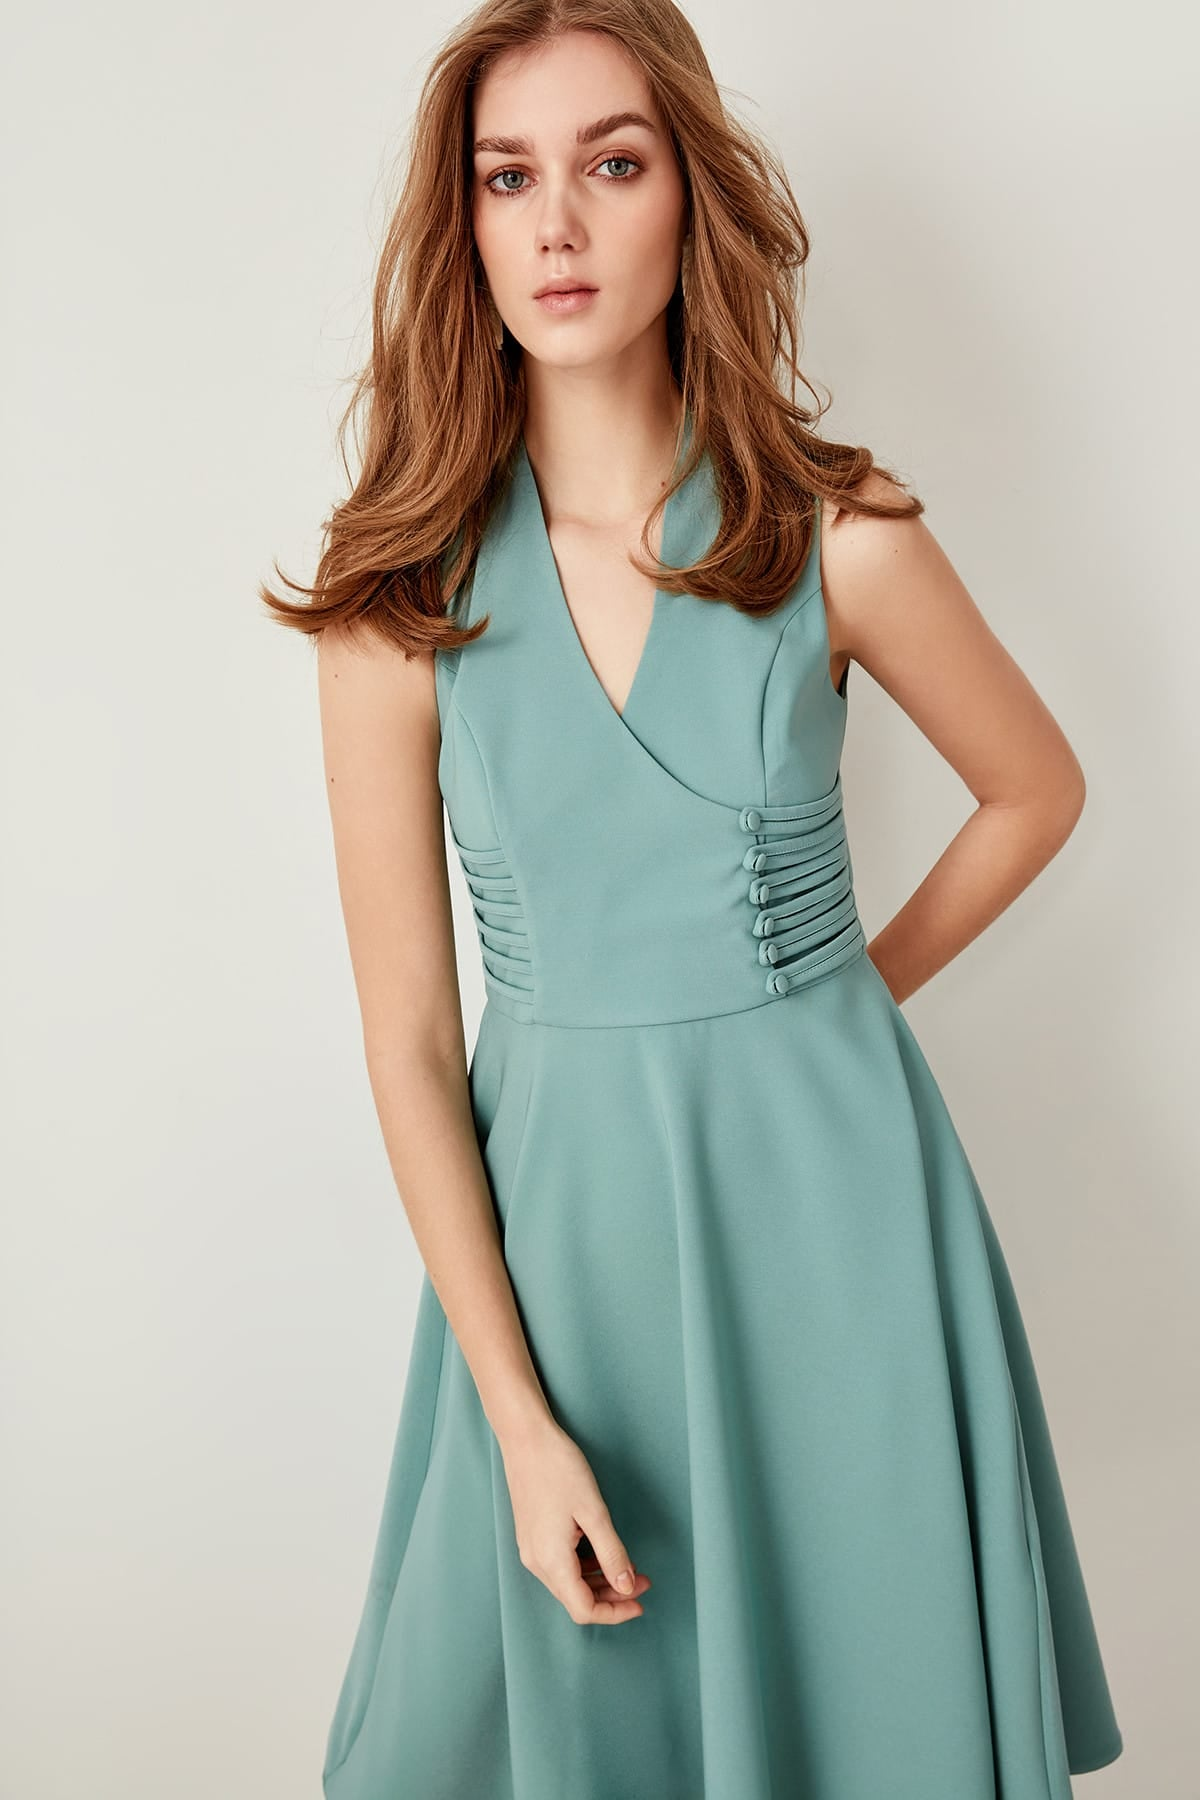 Mint Button Detail Dress - emuuz.com